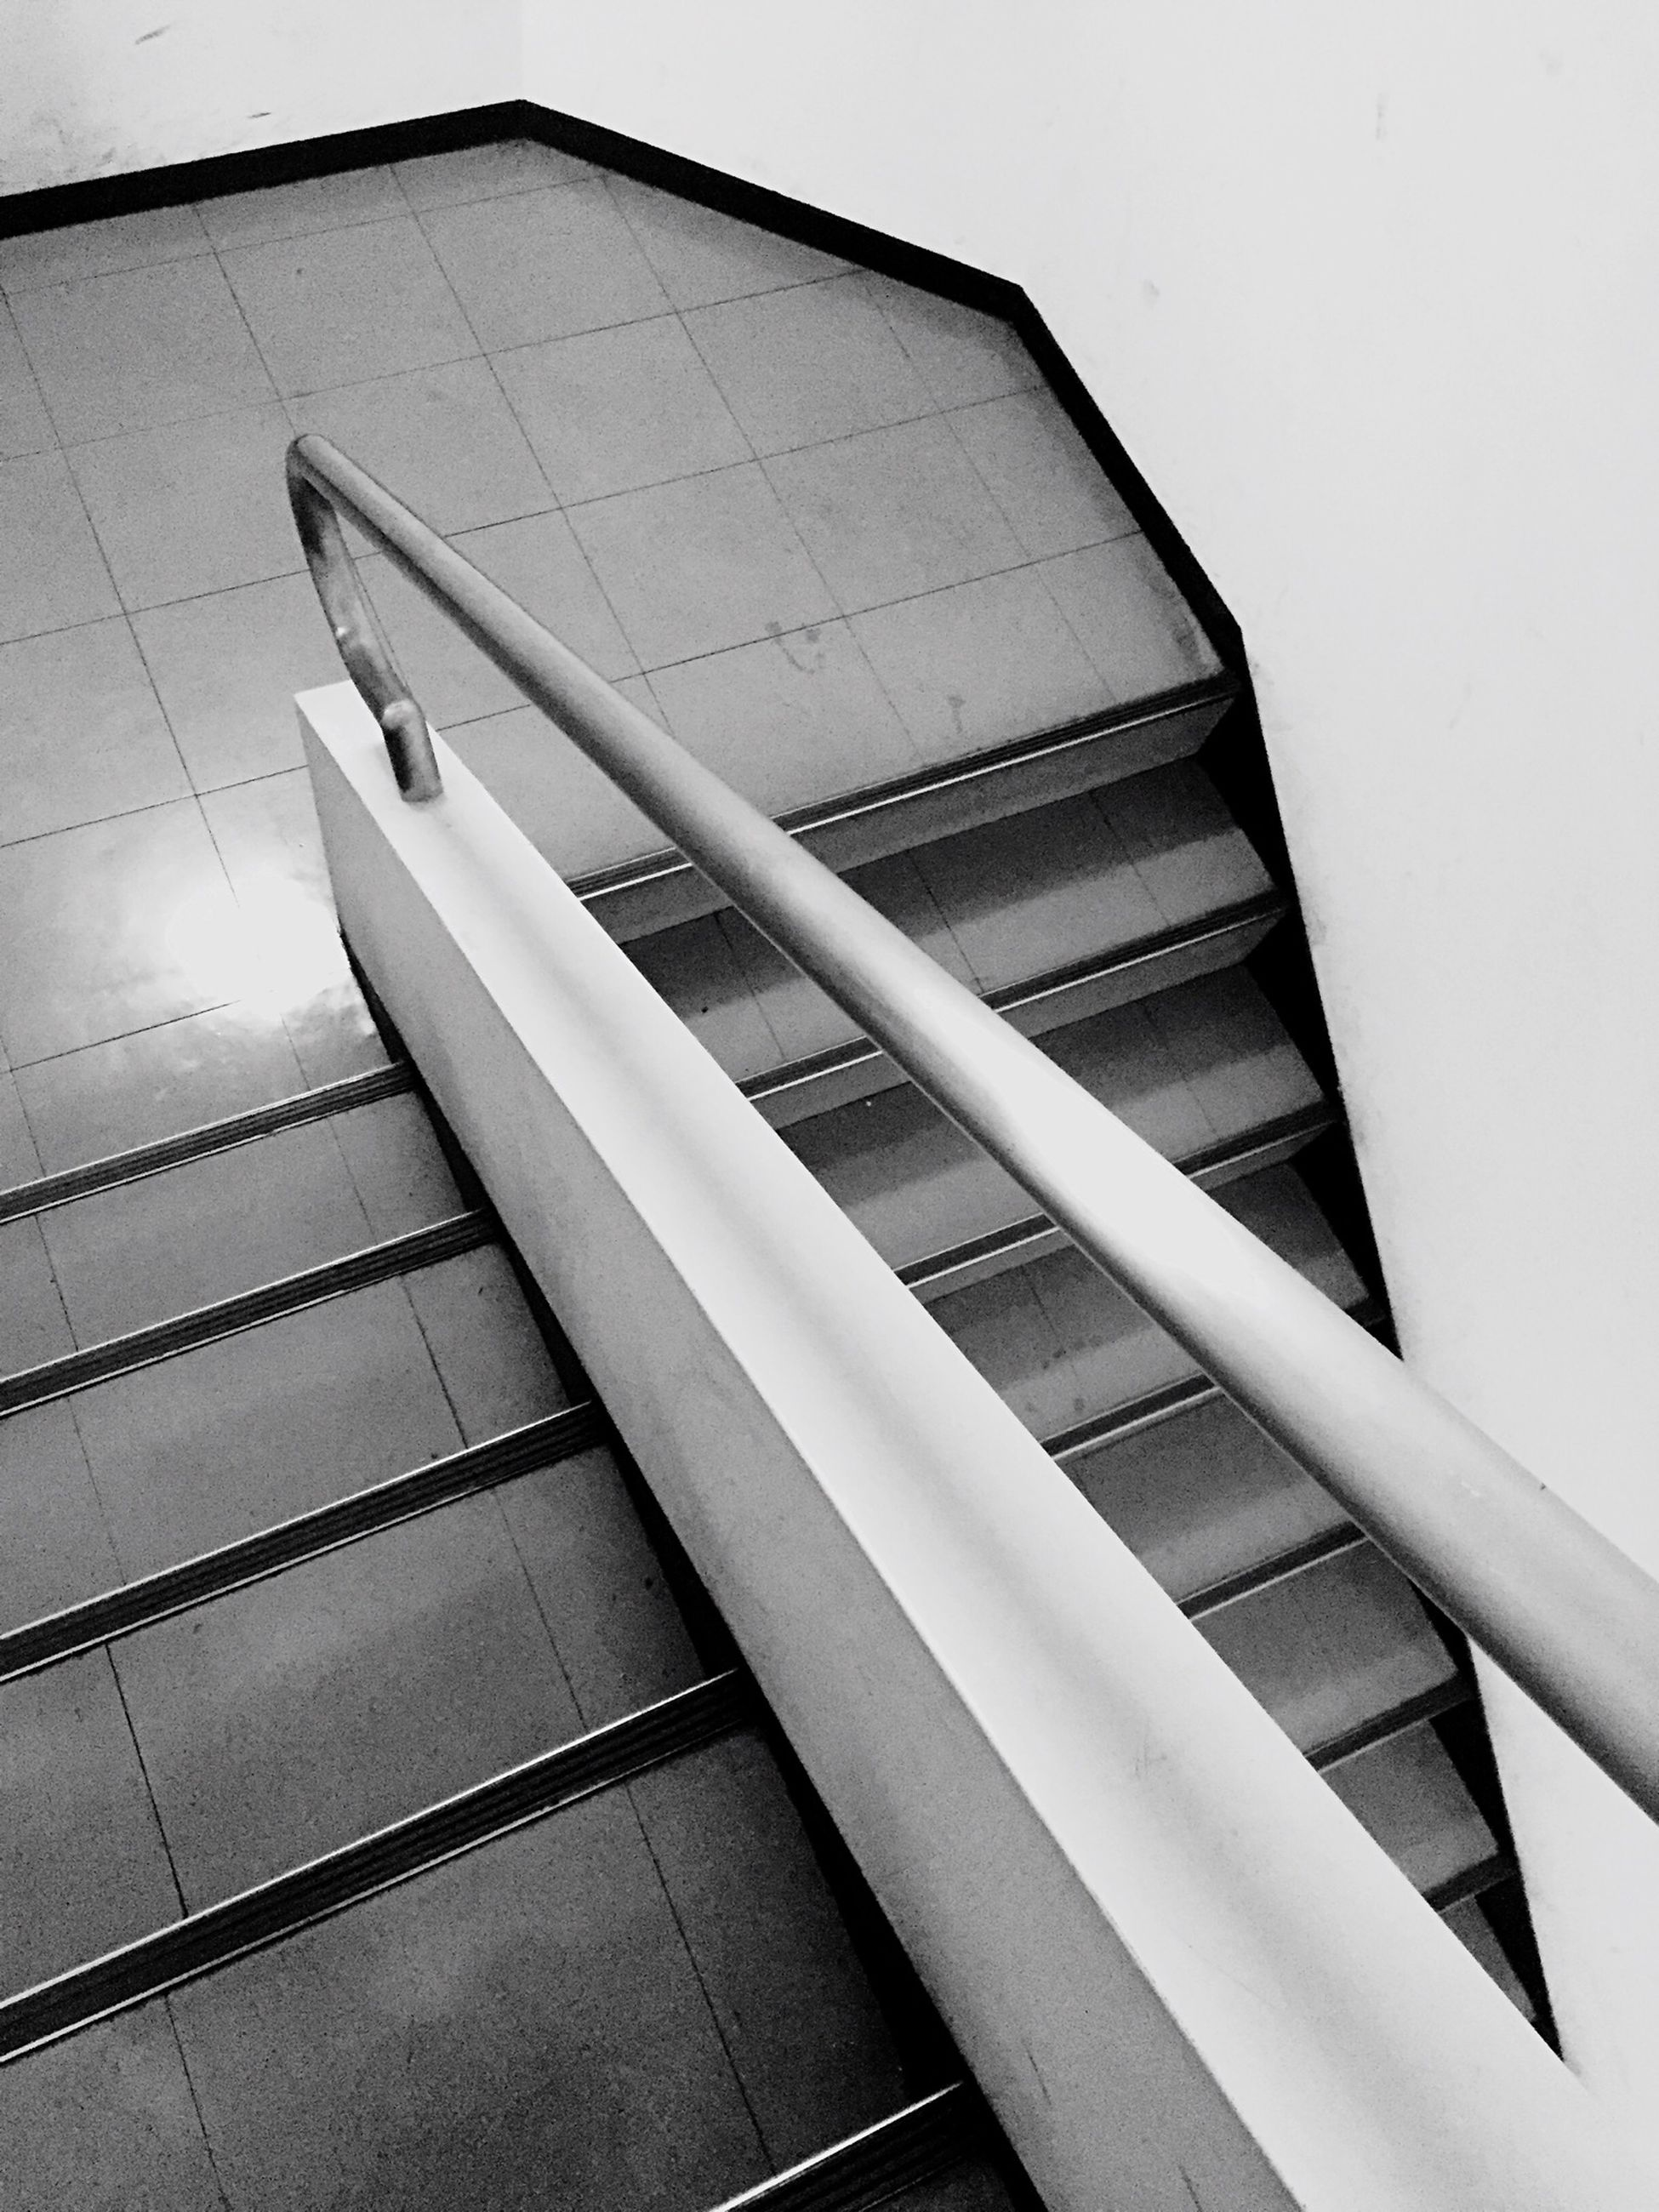 architecture, built structure, low angle view, modern, building exterior, steps and staircases, steps, staircase, building, indoors, high angle view, railing, part of, no people, office building, directly below, city, cropped, white color, skyscraper